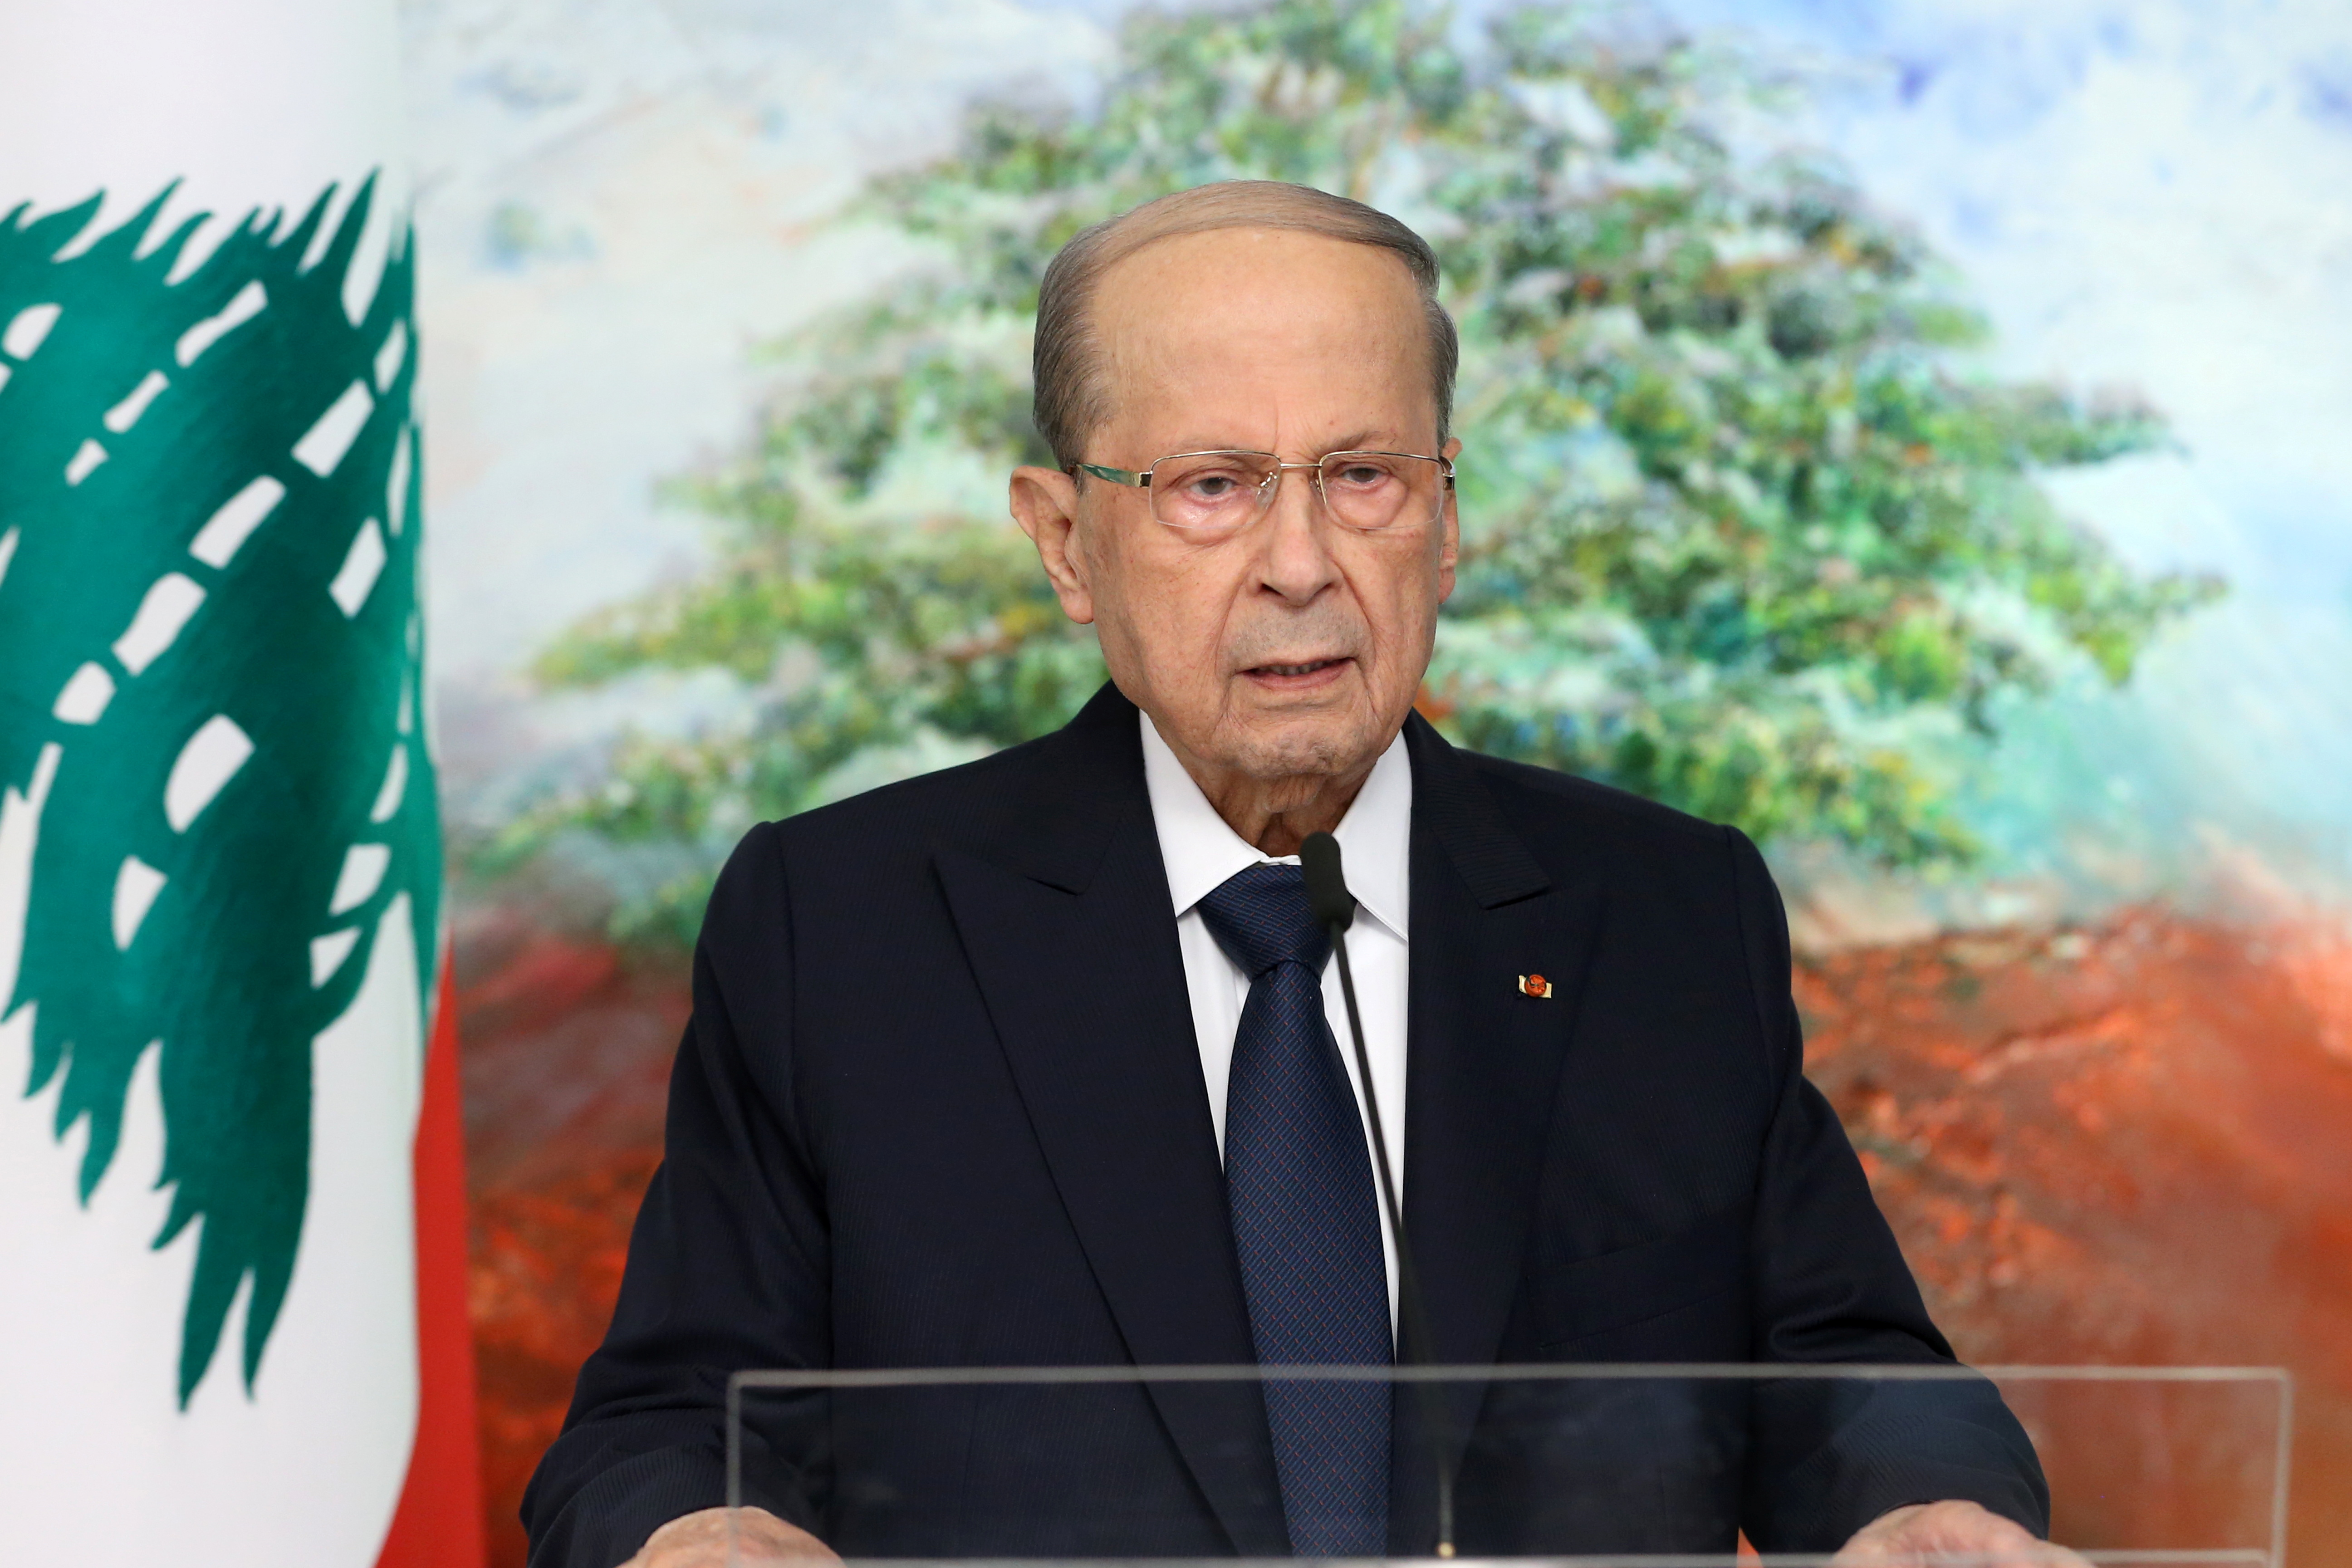 Lebanon's President Michel Aoun is seen in this handout picture released by Dalati Nohra on September 24, 2021, while addressing the United Nations General Assembly via a recorded video message, in Baabda, Lebanon. Dalati Nohra/Handout via REUTERS